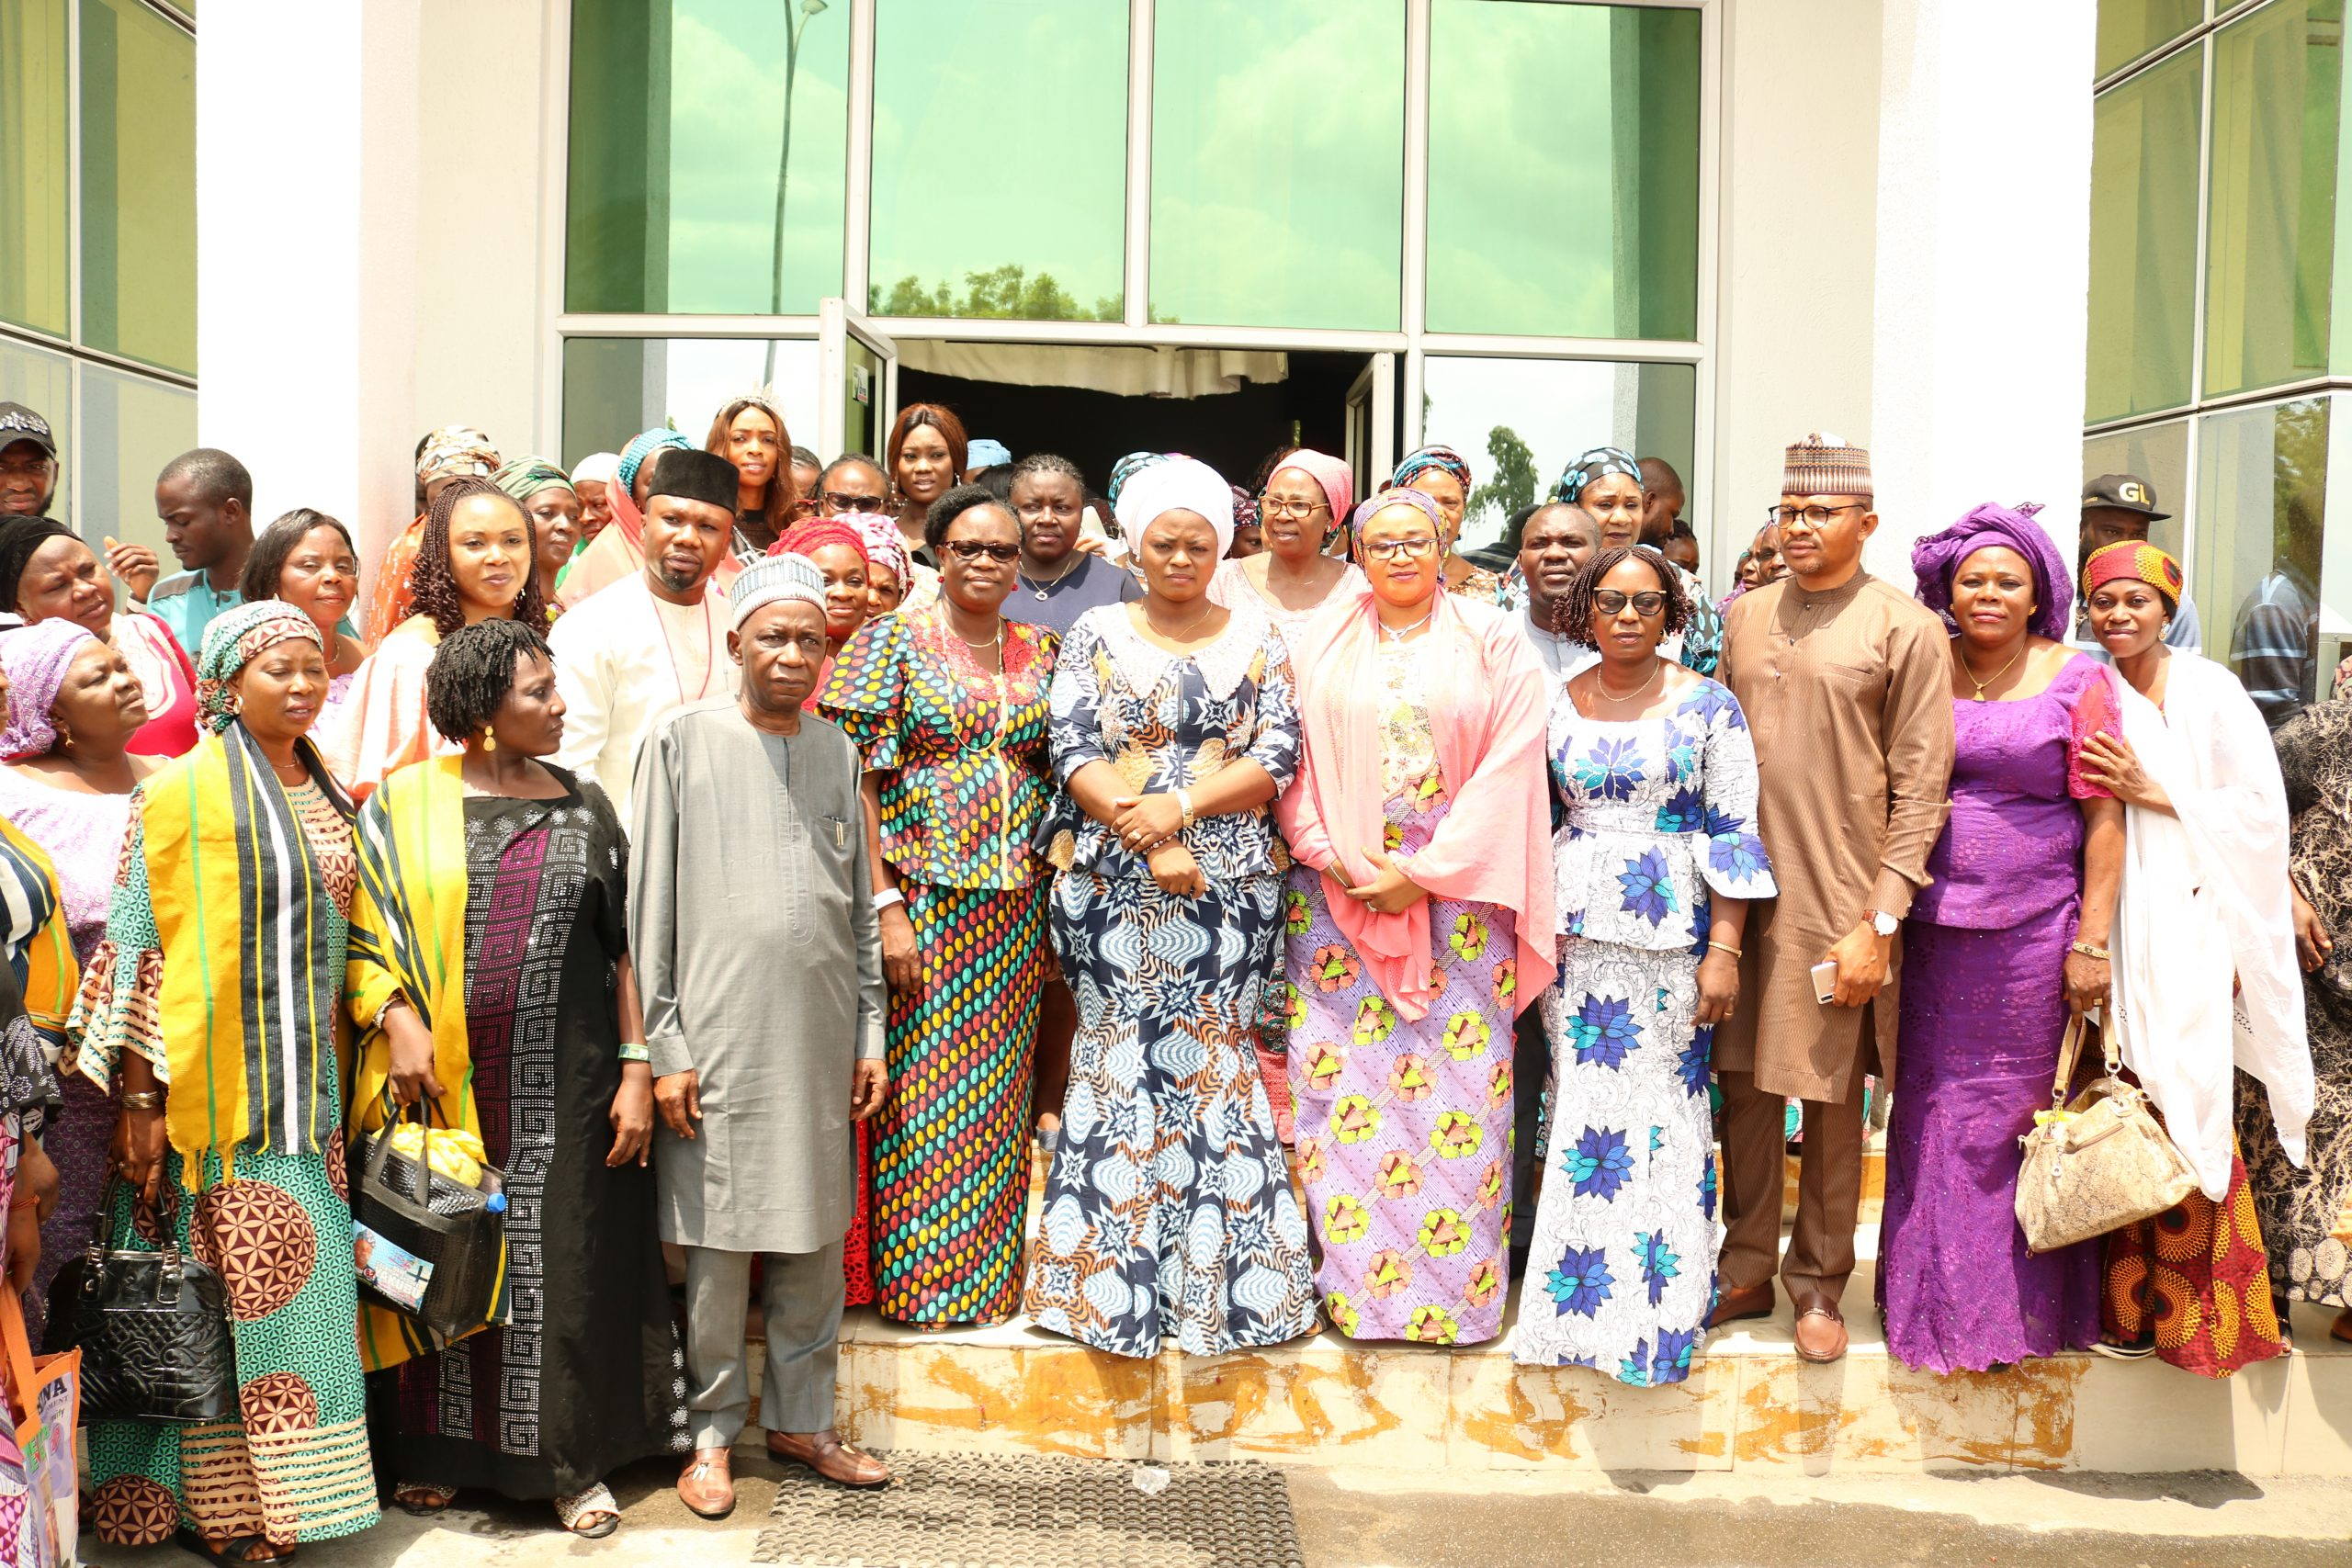 Pibcid, the ActionAid Nigeria implementing partner in kogi state in collaboration with kogi state Ministry of Women Affairs and Social Development held SARVE II Women Summit on Preventing Violent Extremism in kogi state